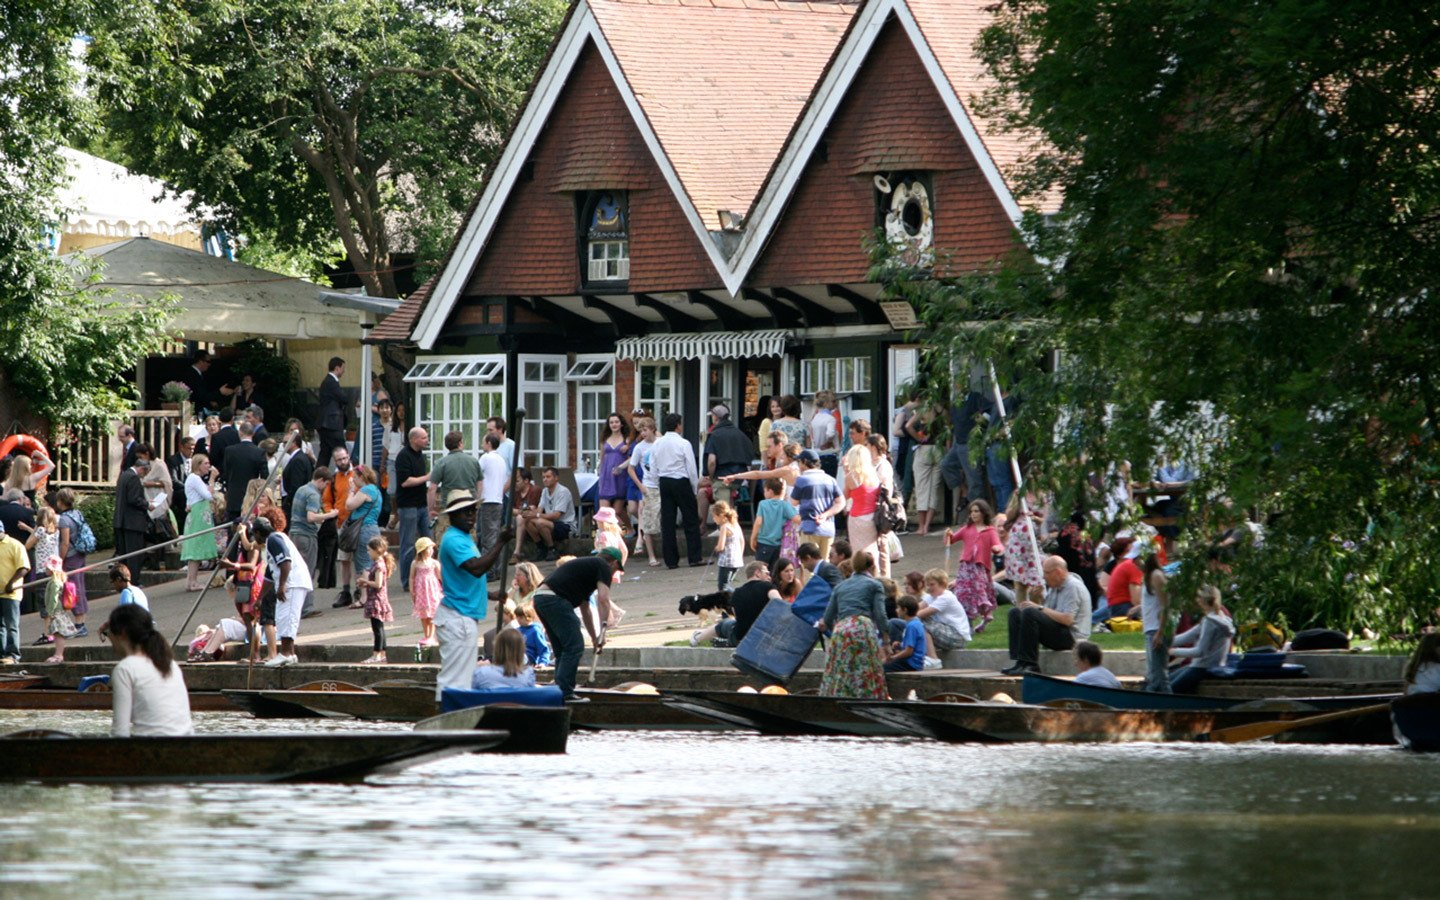 Cherwell Boathouse punts in Oxford